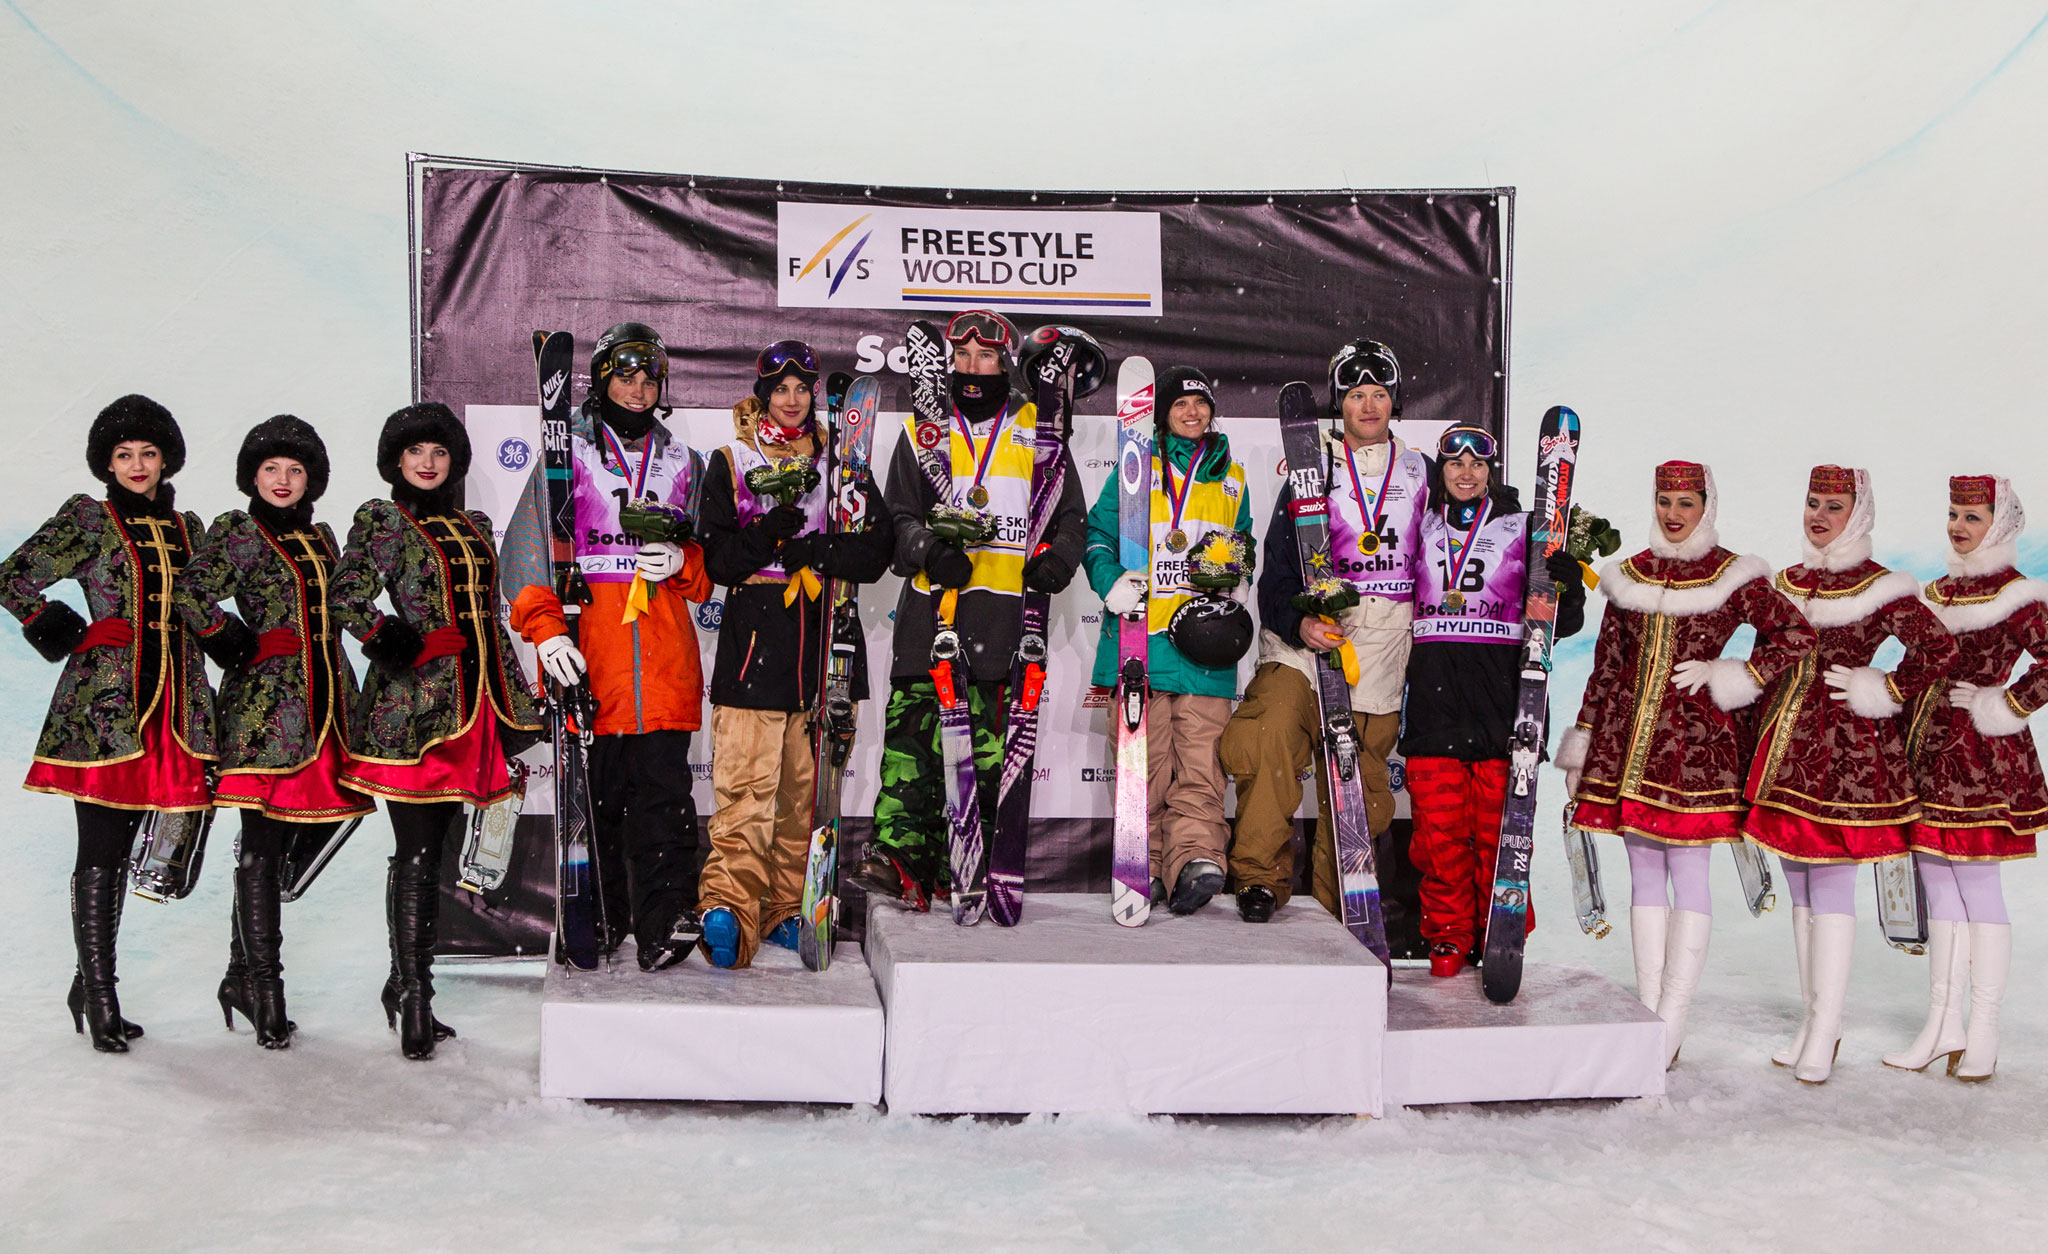 The men's and women's podium at the FIS World Cup Halfpipe contest in Sochi, Russia.